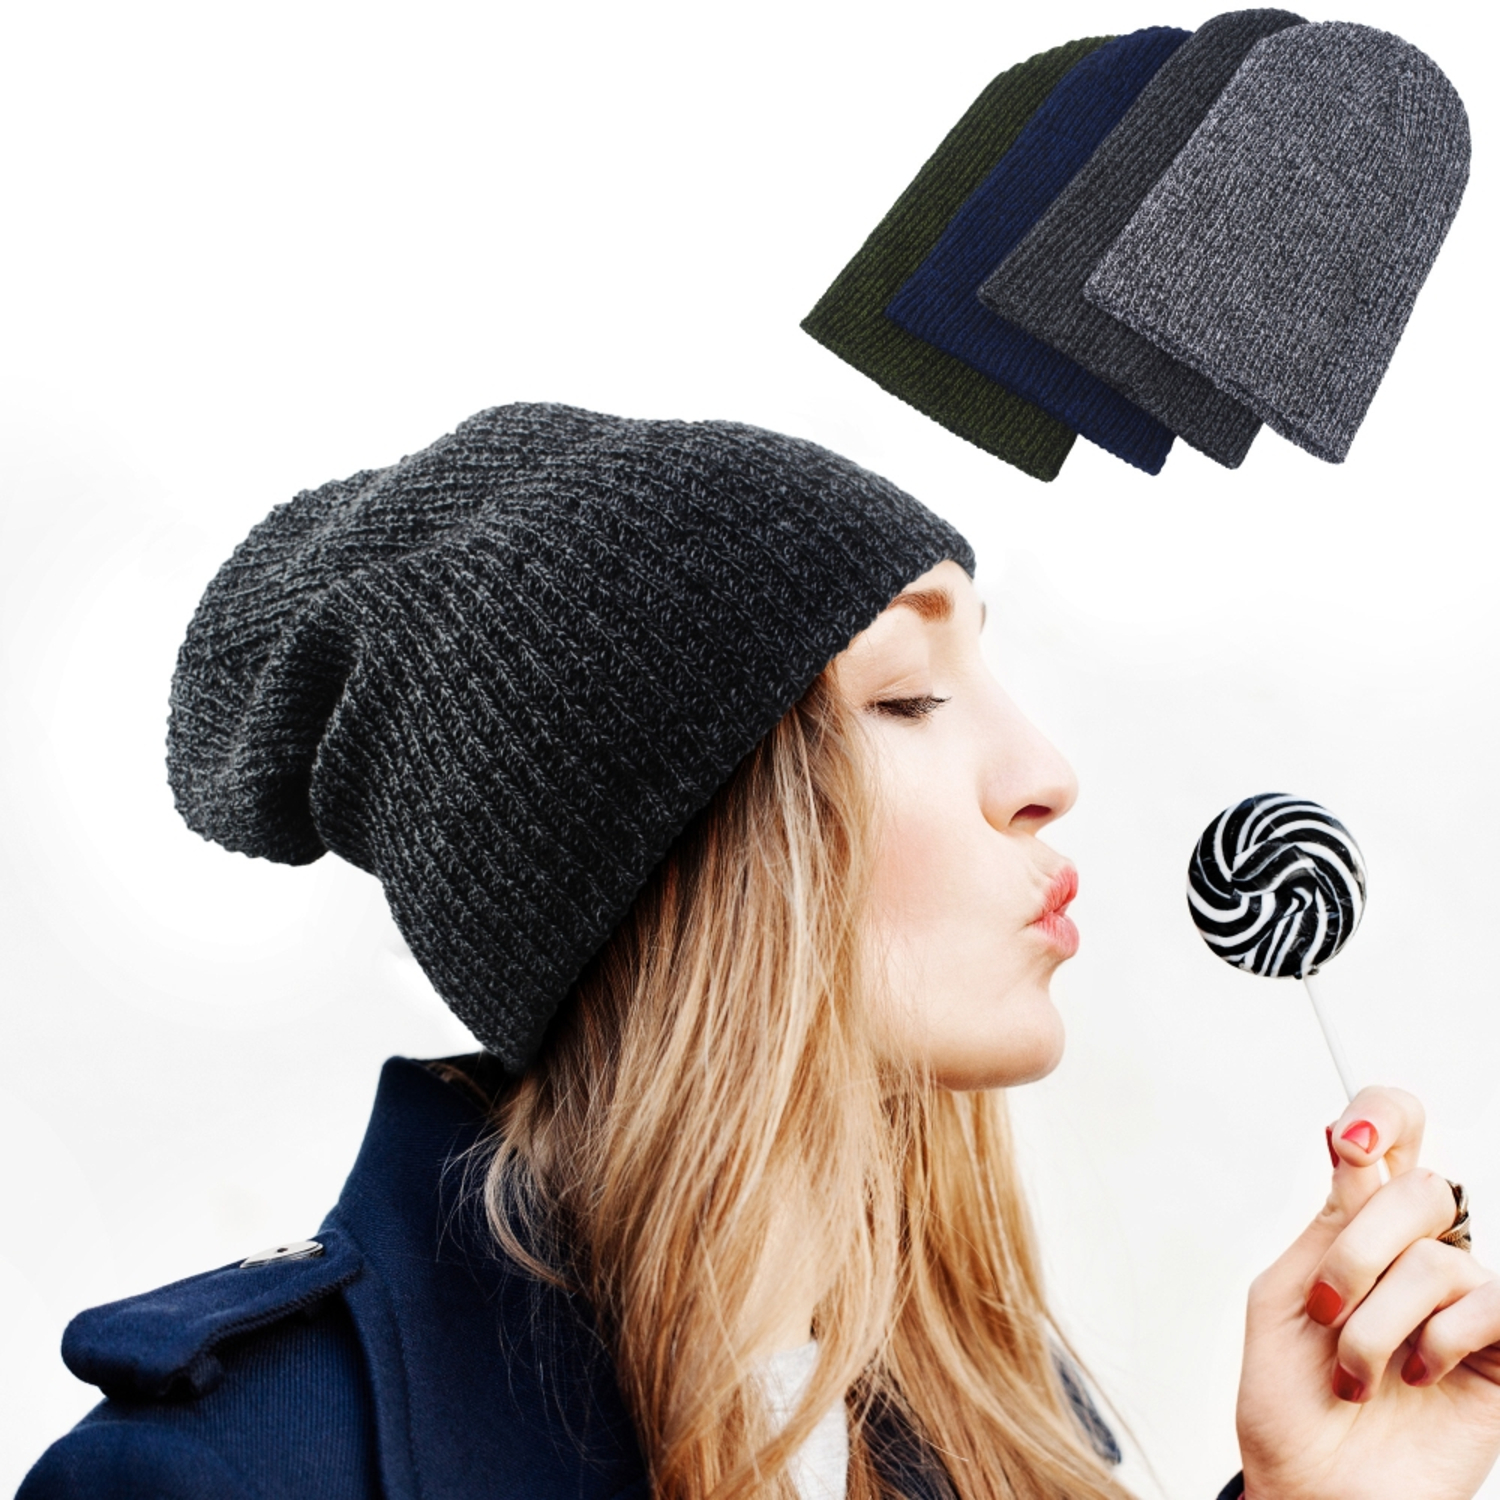 Zodaca Winter Women Men Knitted Ski Baggy Slouch Hat Unisex Cap Beanie Hip-Hop Warm Hats